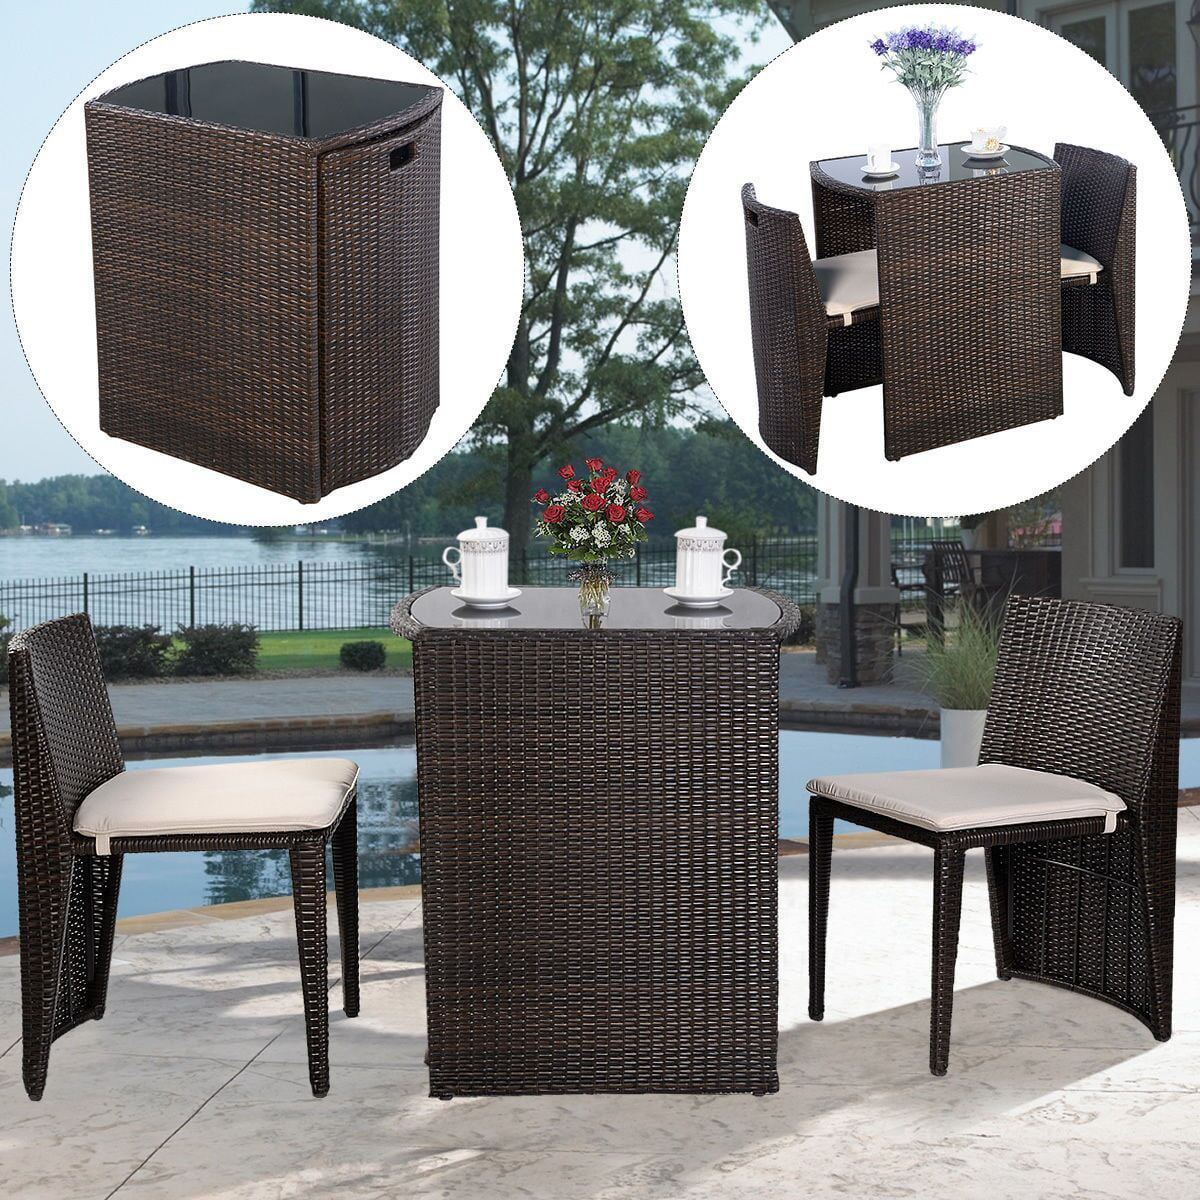 Costway 3 PCS Cushioned Outdoor Wicker Patio Set Garden Lawn Sofa Furniture Seat Brown by Costway